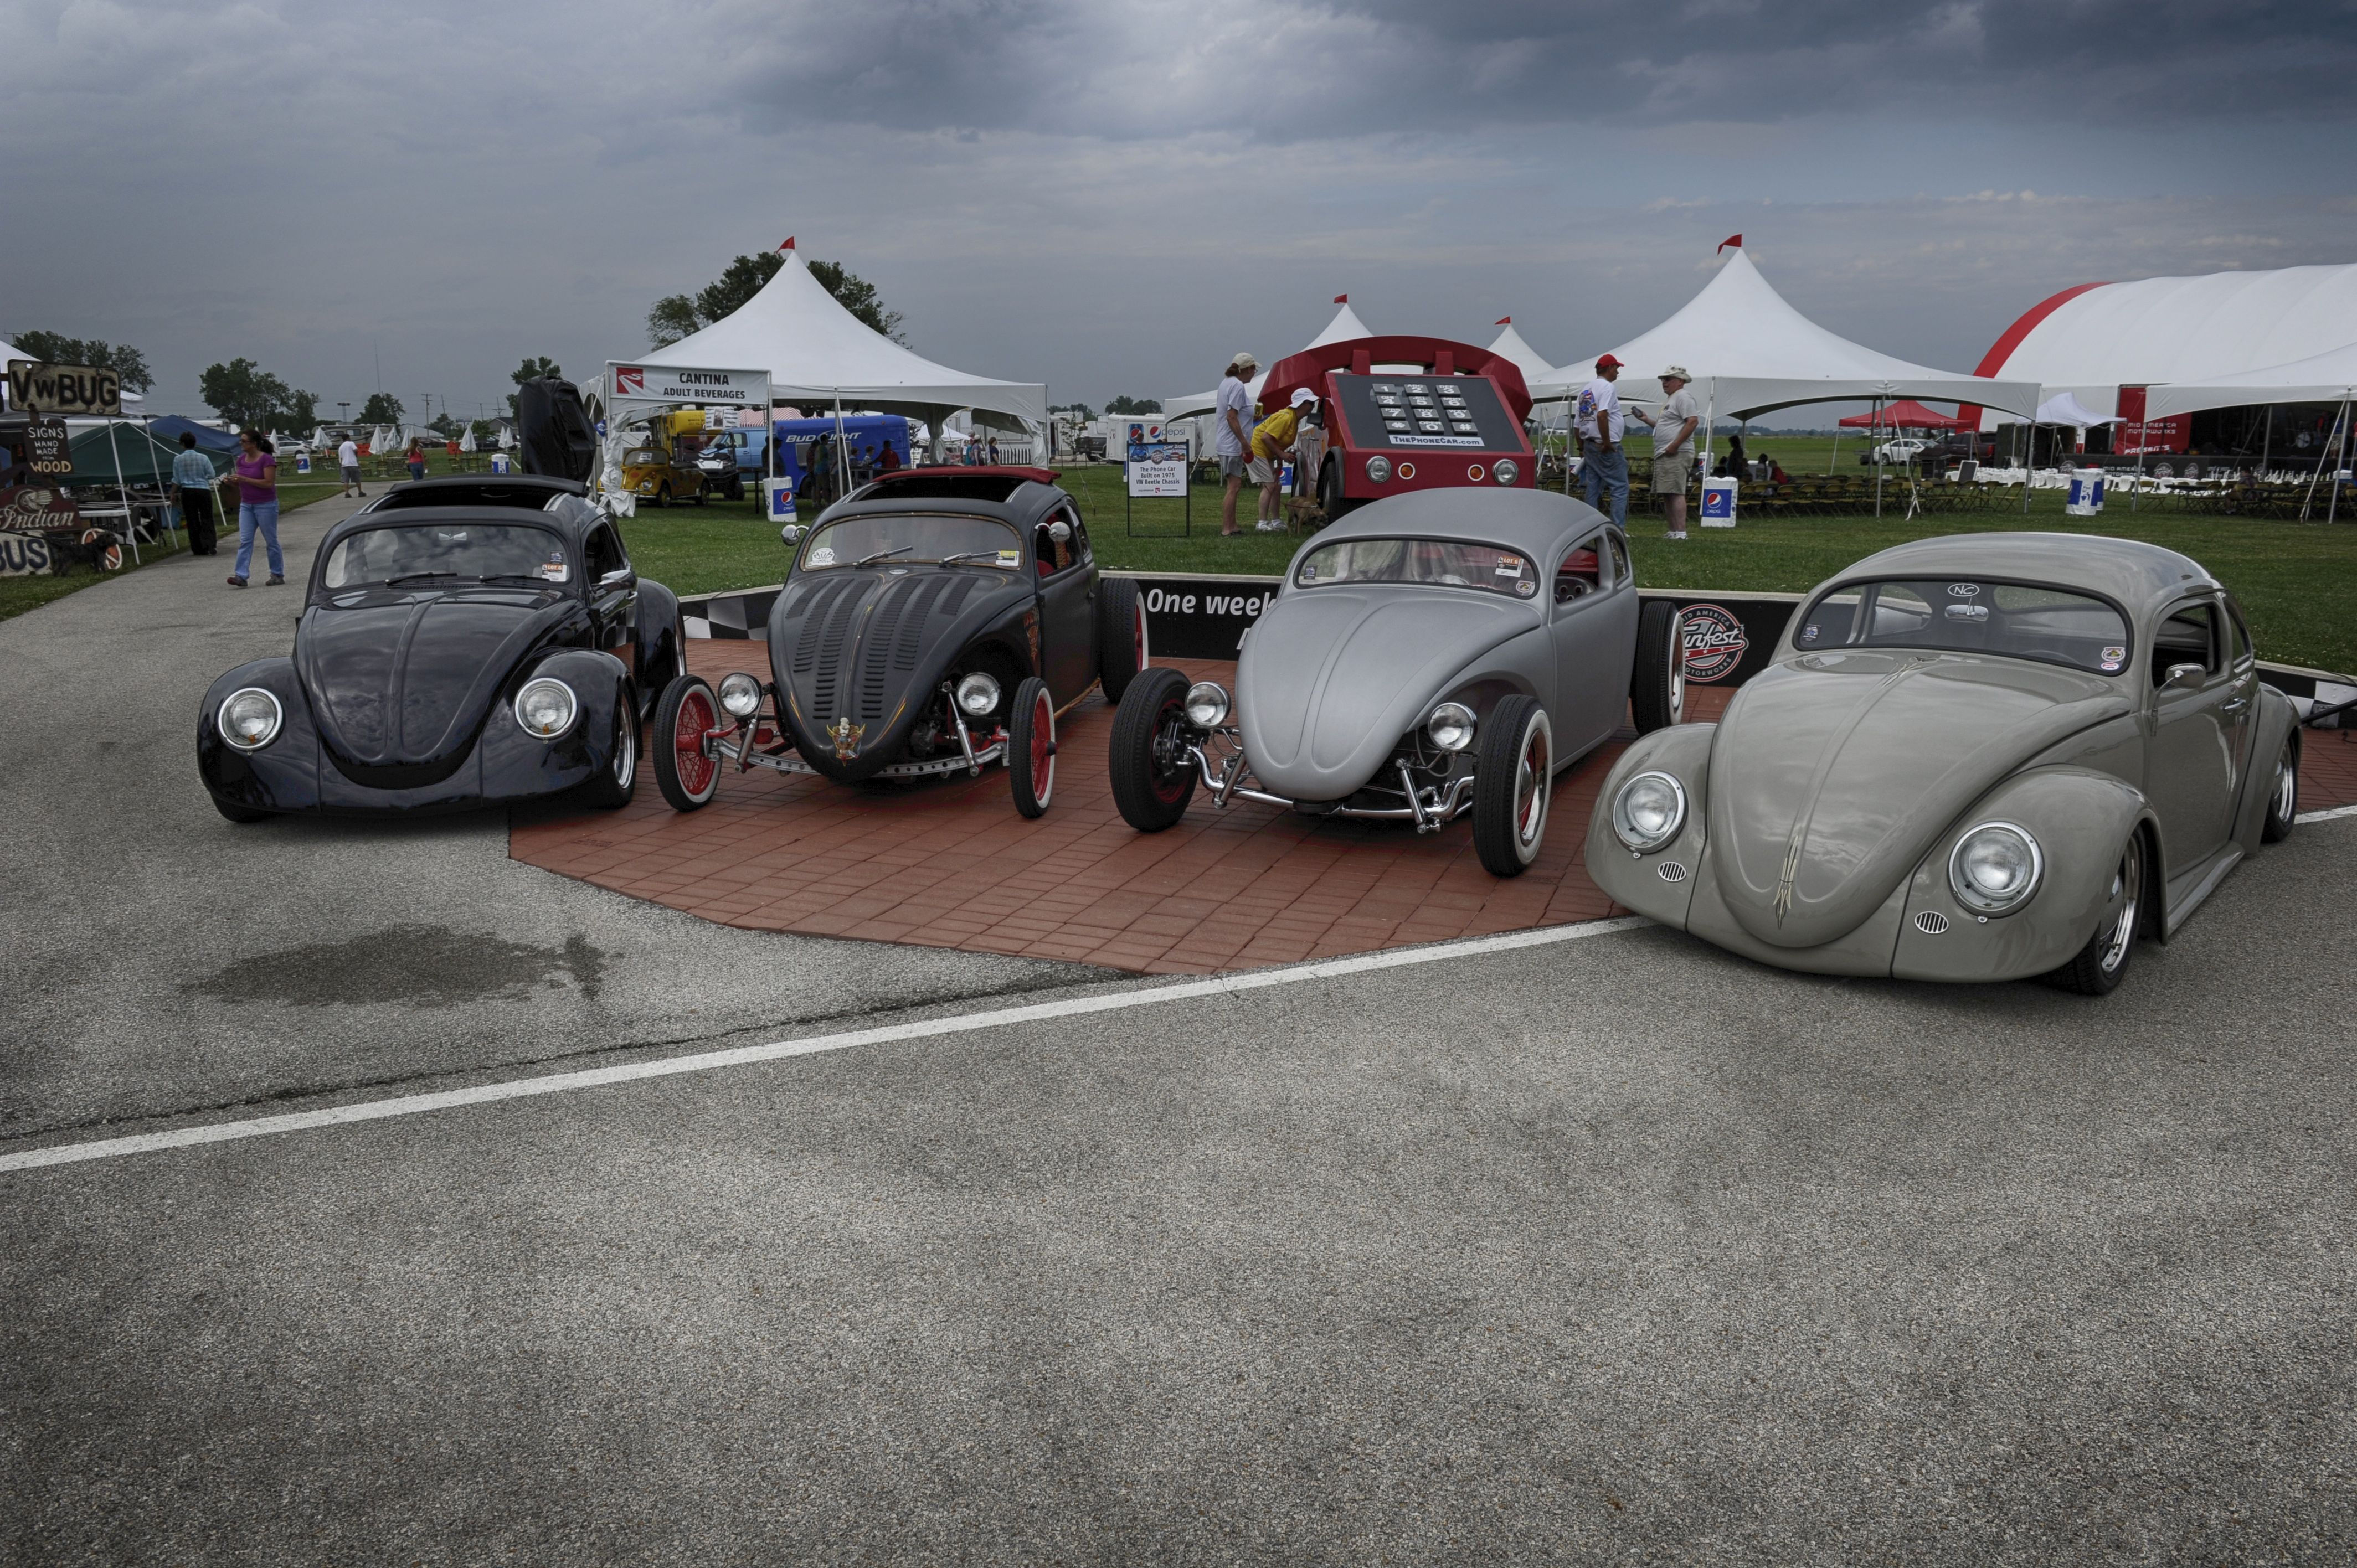 4 Hot Rods at the Funfest Pit Wall during Funfest for Air Cooled VW